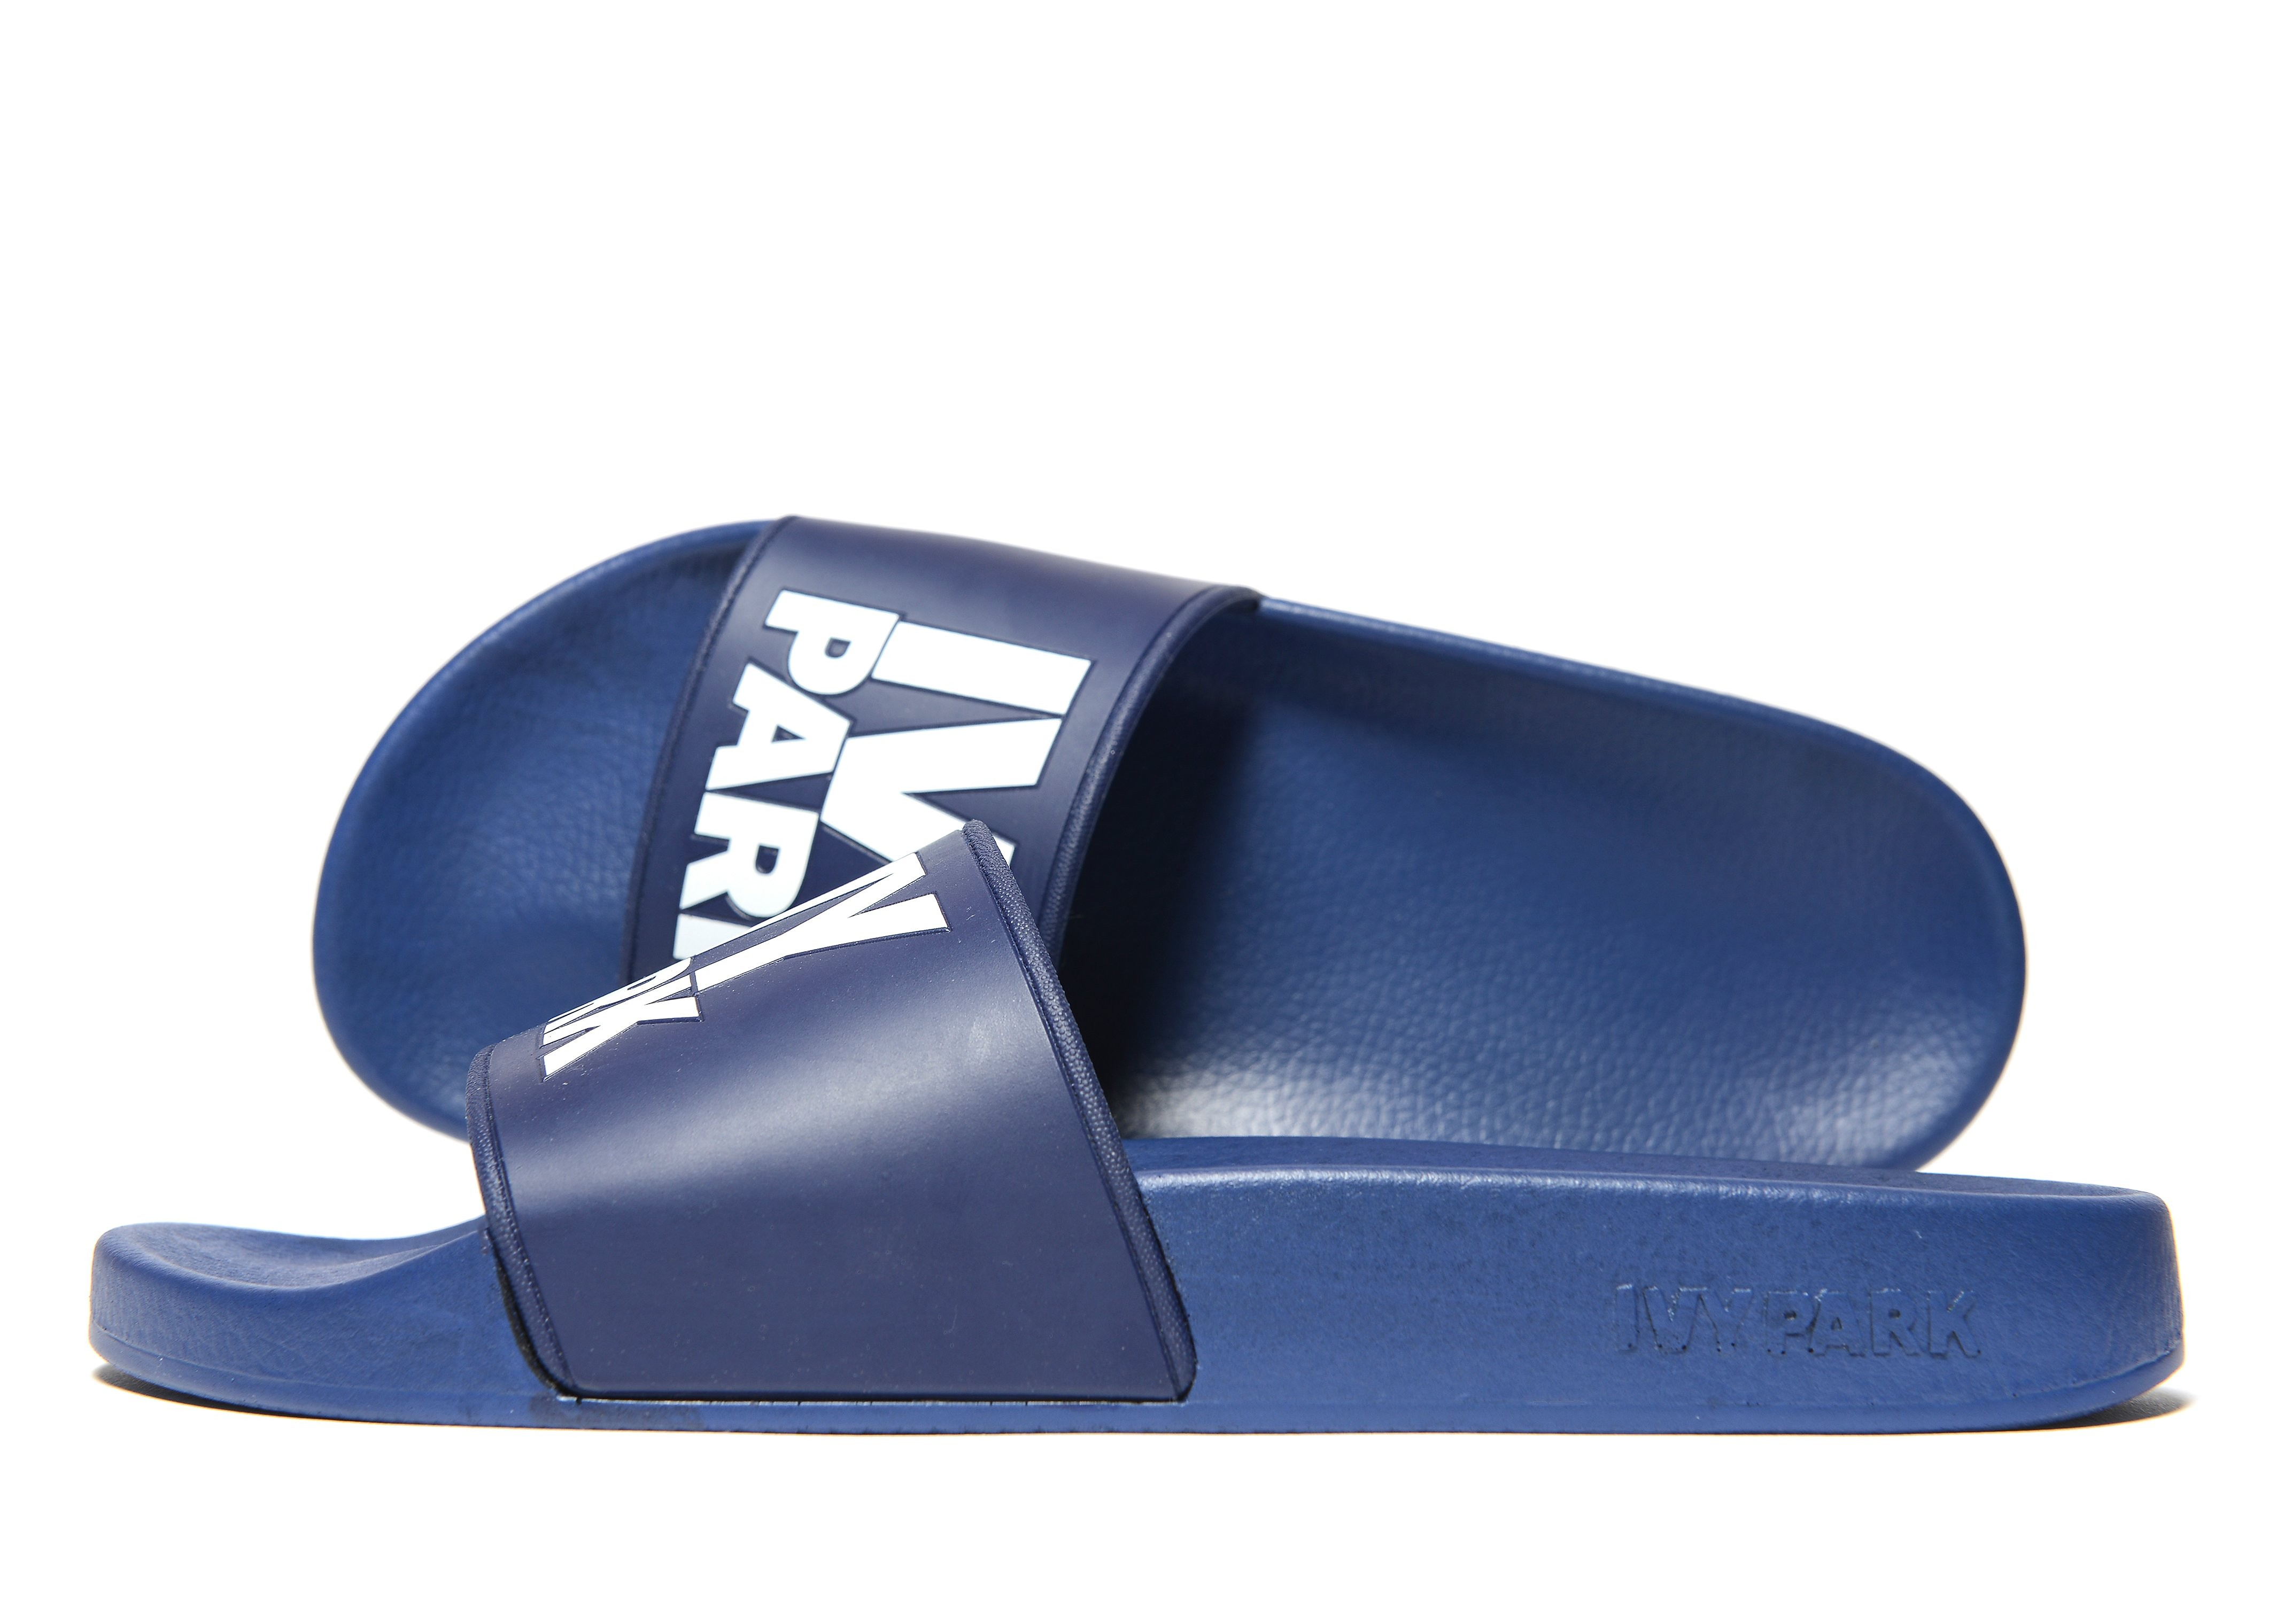 IVY PARK Logo Sliders Women's